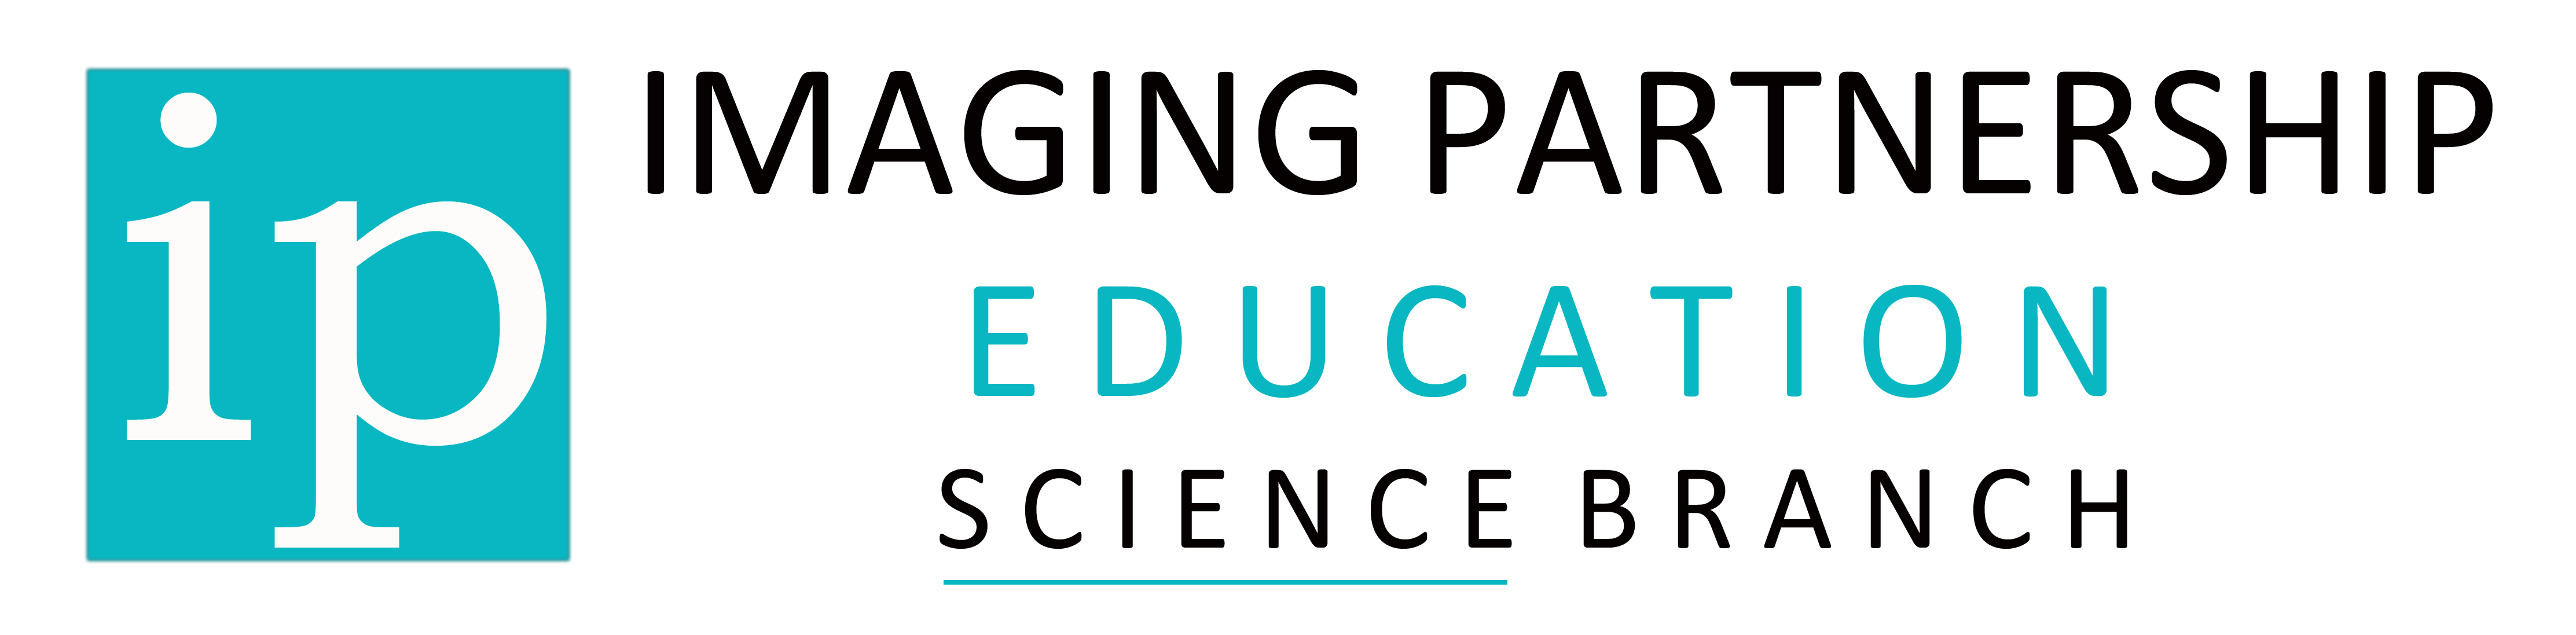 ip-education-science-branch